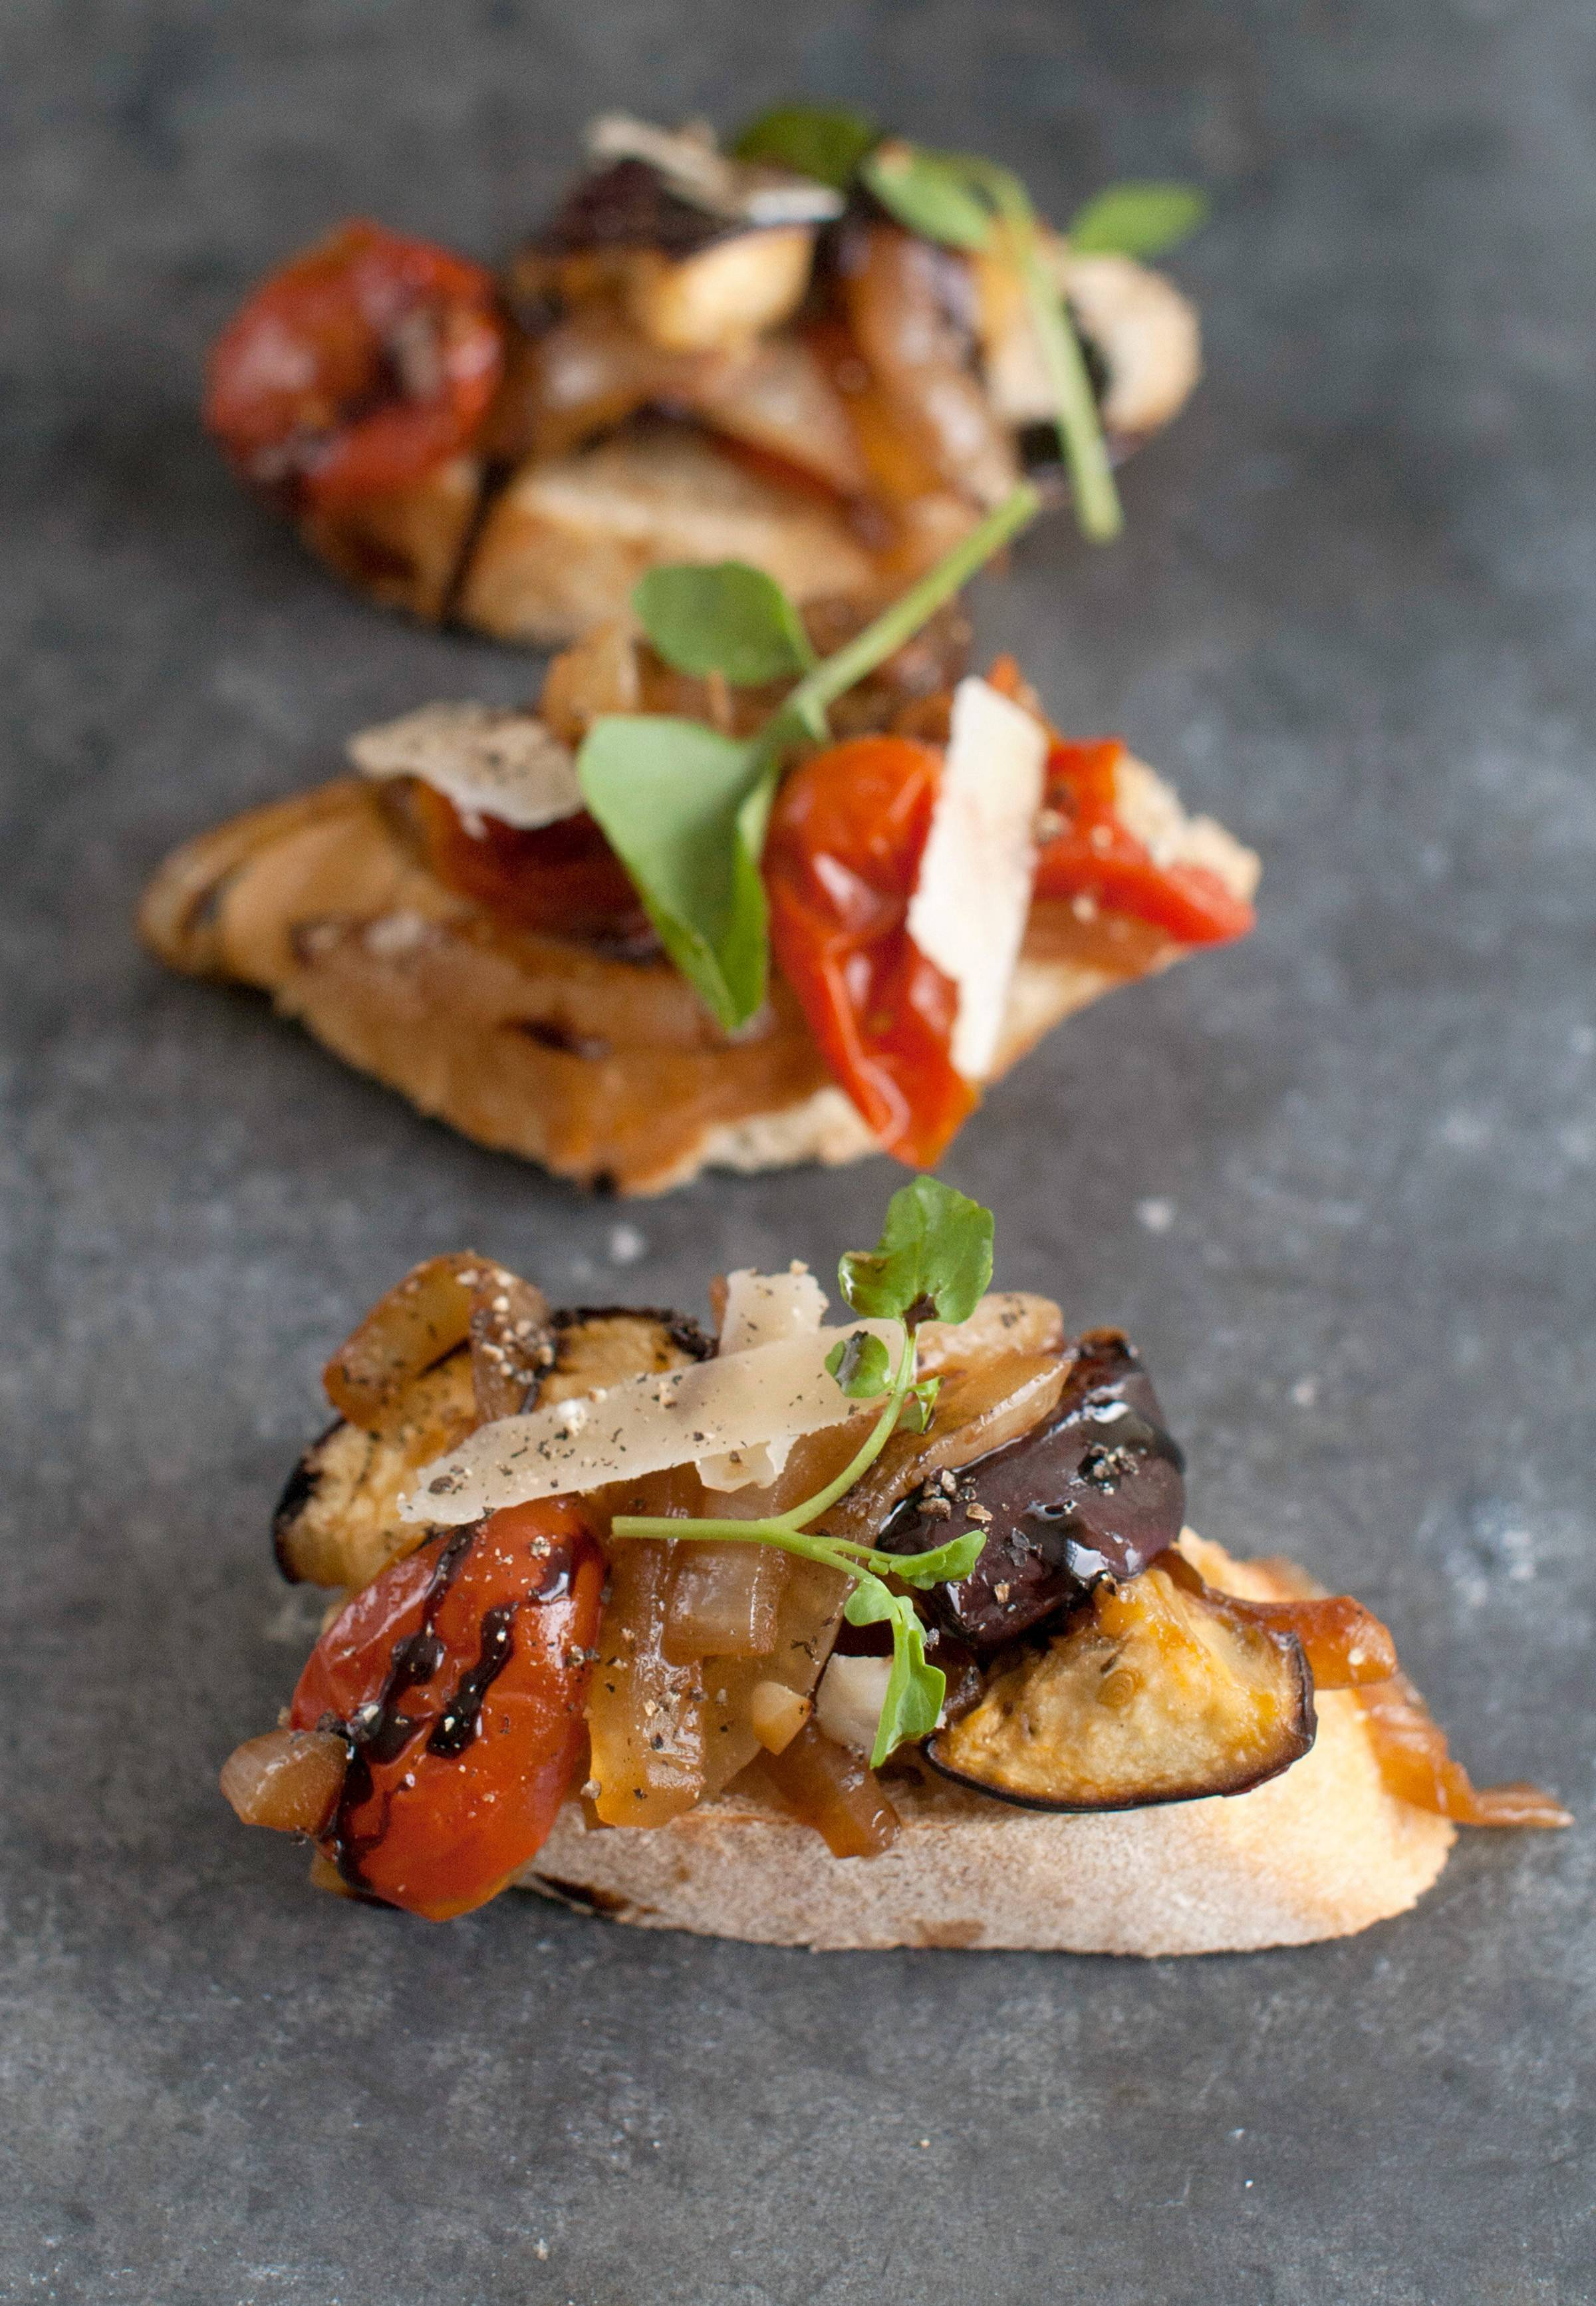 Salting and draining the eggplants and tomatoes removes excess water, which not only makes for a meatier texture, it also concentrates the flavors in this crostini appetizer.